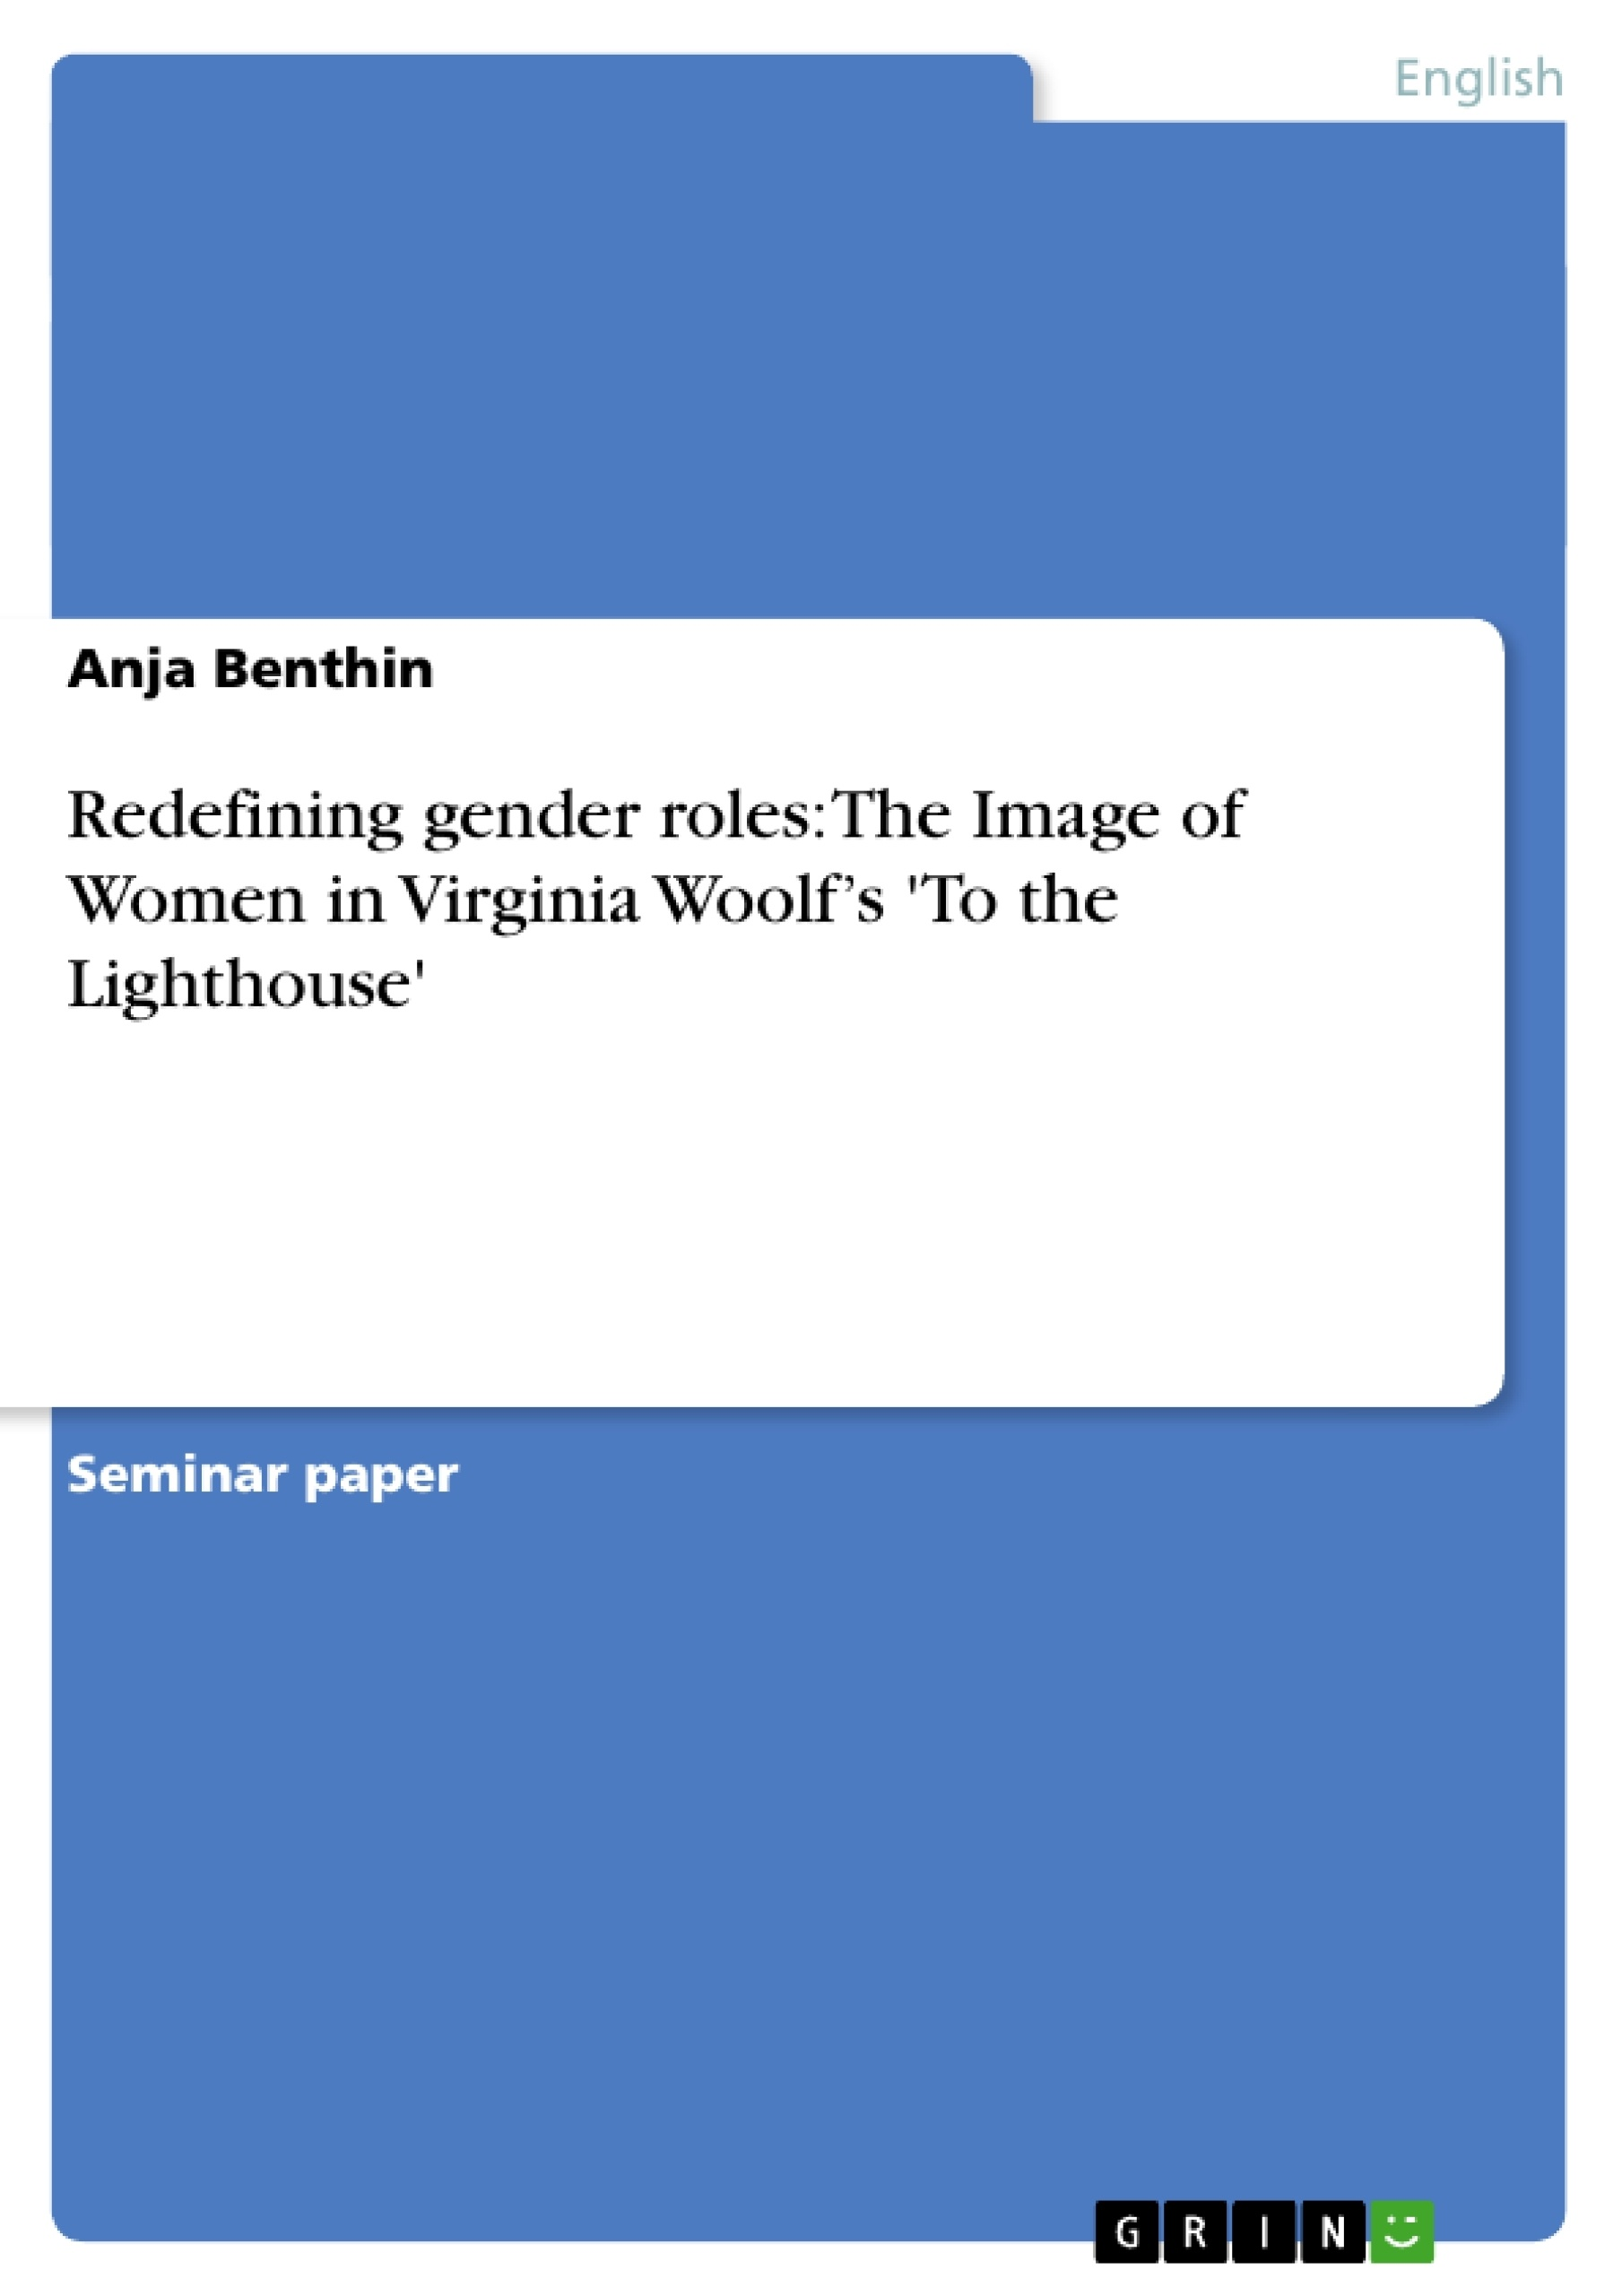 Title: Redefining gender roles: The Image of Women in Virginia Woolf's 'To the Lighthouse'